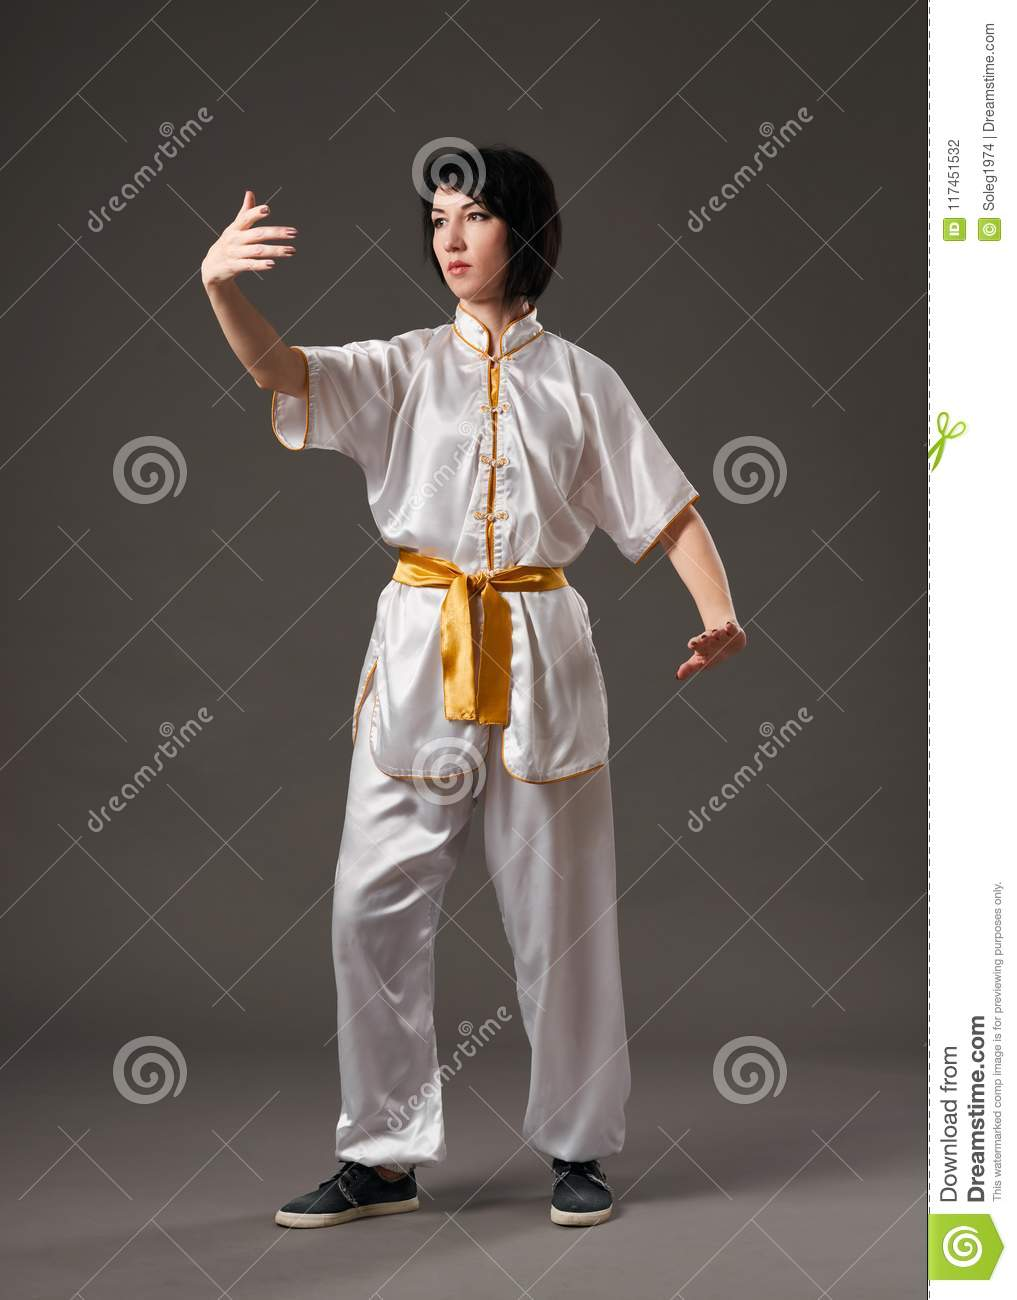 Young woman practicing tai chi chuan. Chinese management skill Qi`s energy. Gray background, studio shoot.